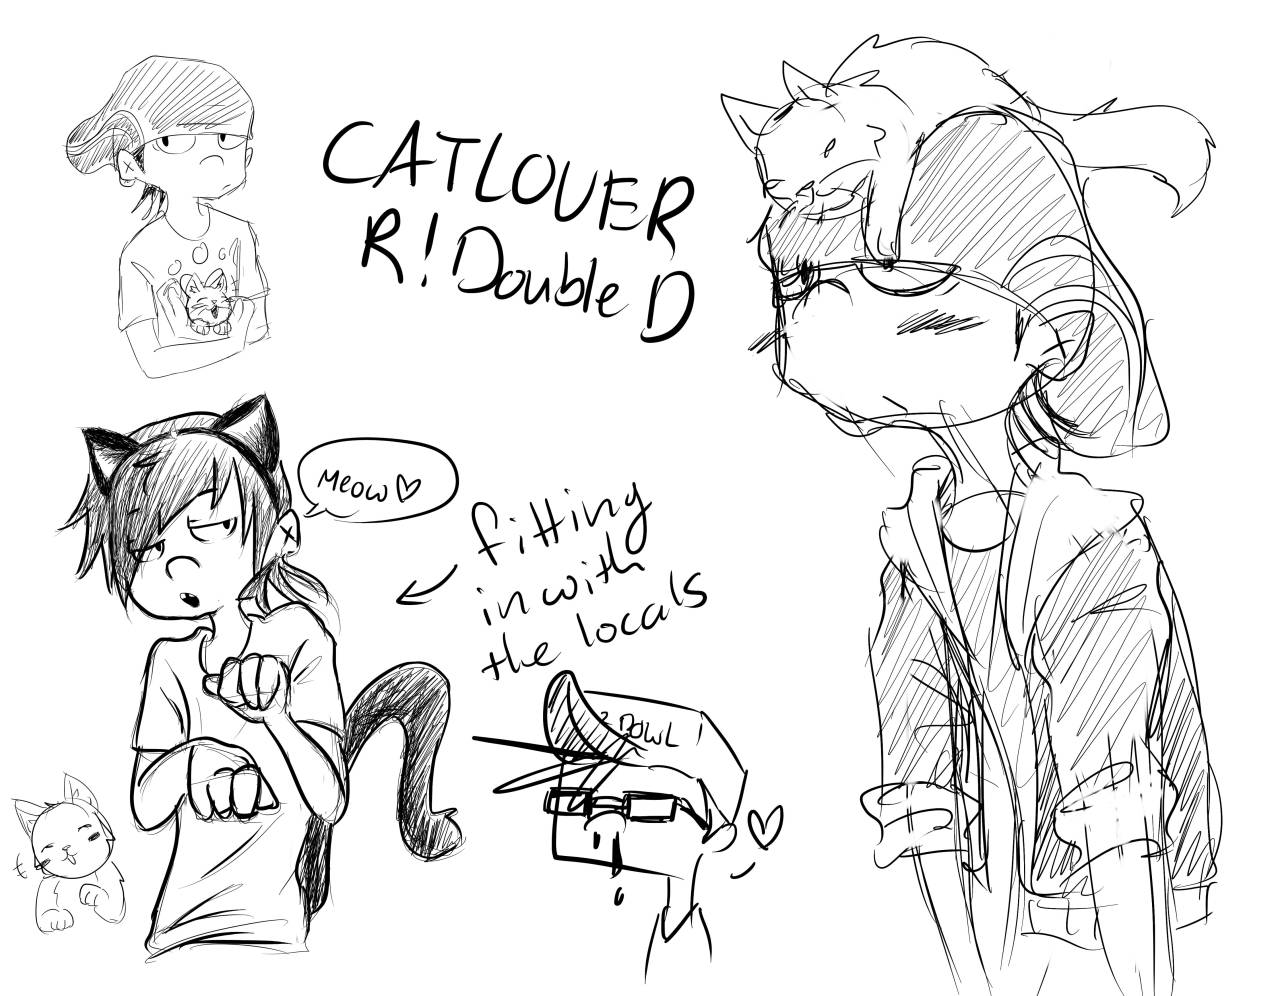 waffles-is-a-bunny:  Catlover R!Edd (mainly because I wanted to give him cat ears) Reverse!au belongs to Asphy